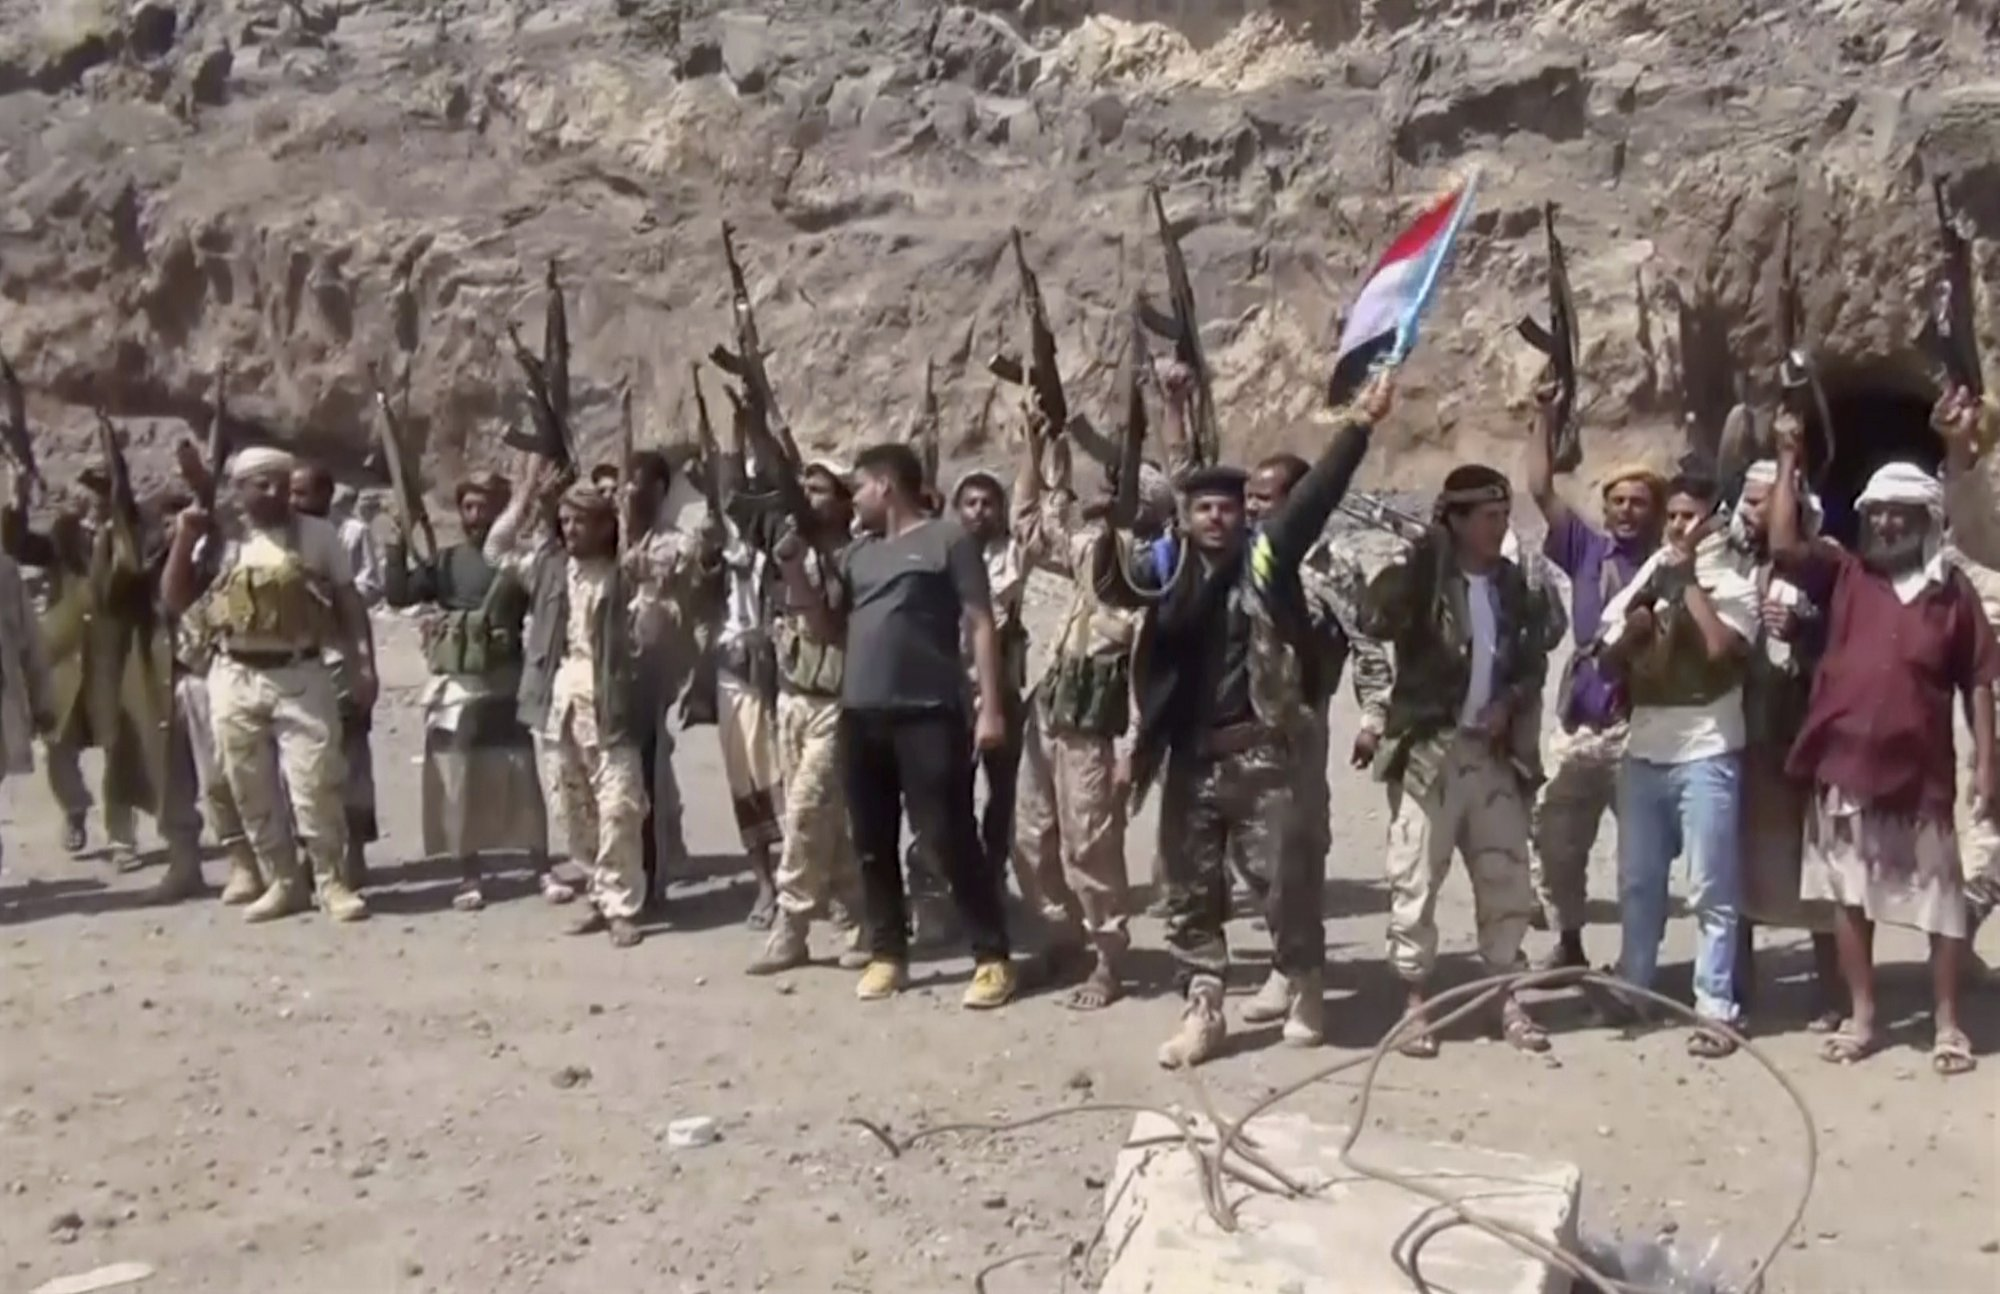 separatists advance on presidential palace in southern yemen